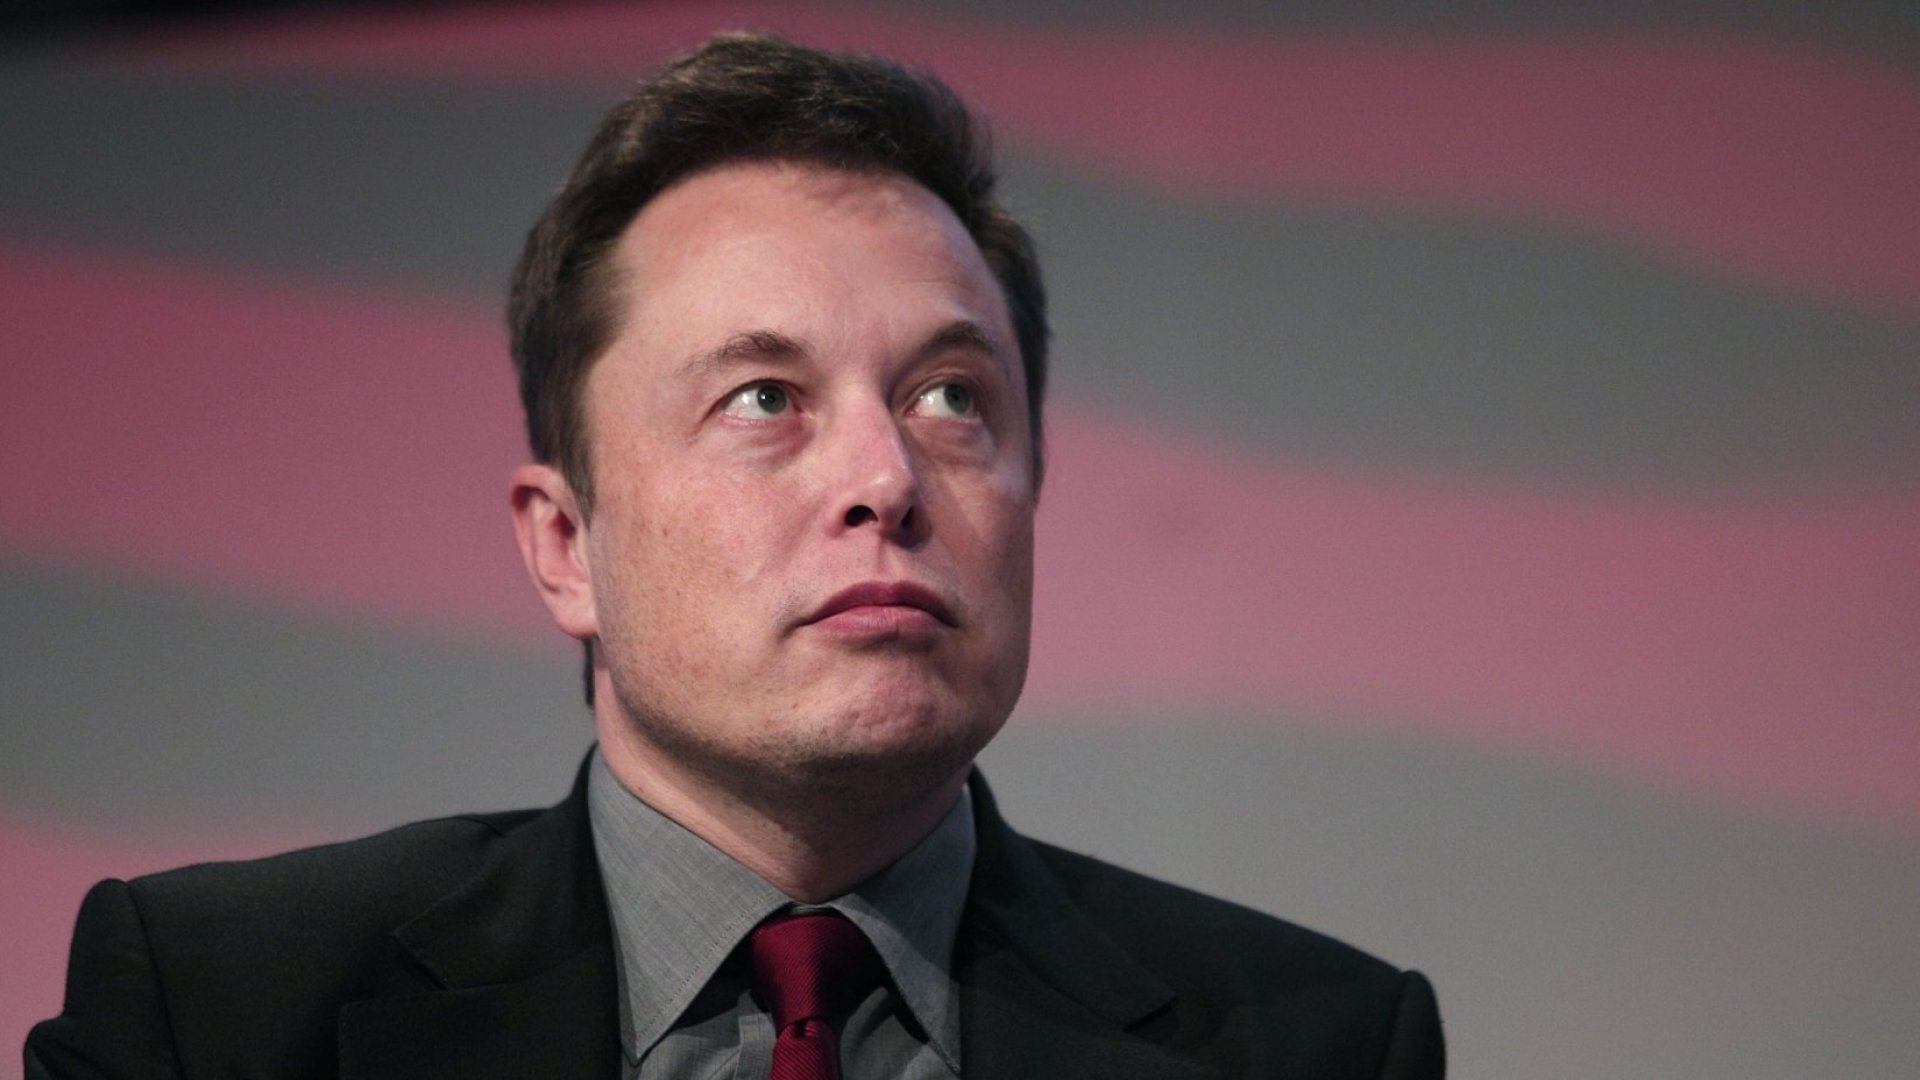 Elon Musk Finally Delivers on Something Tesla's Investors Wanted: He Was Boring